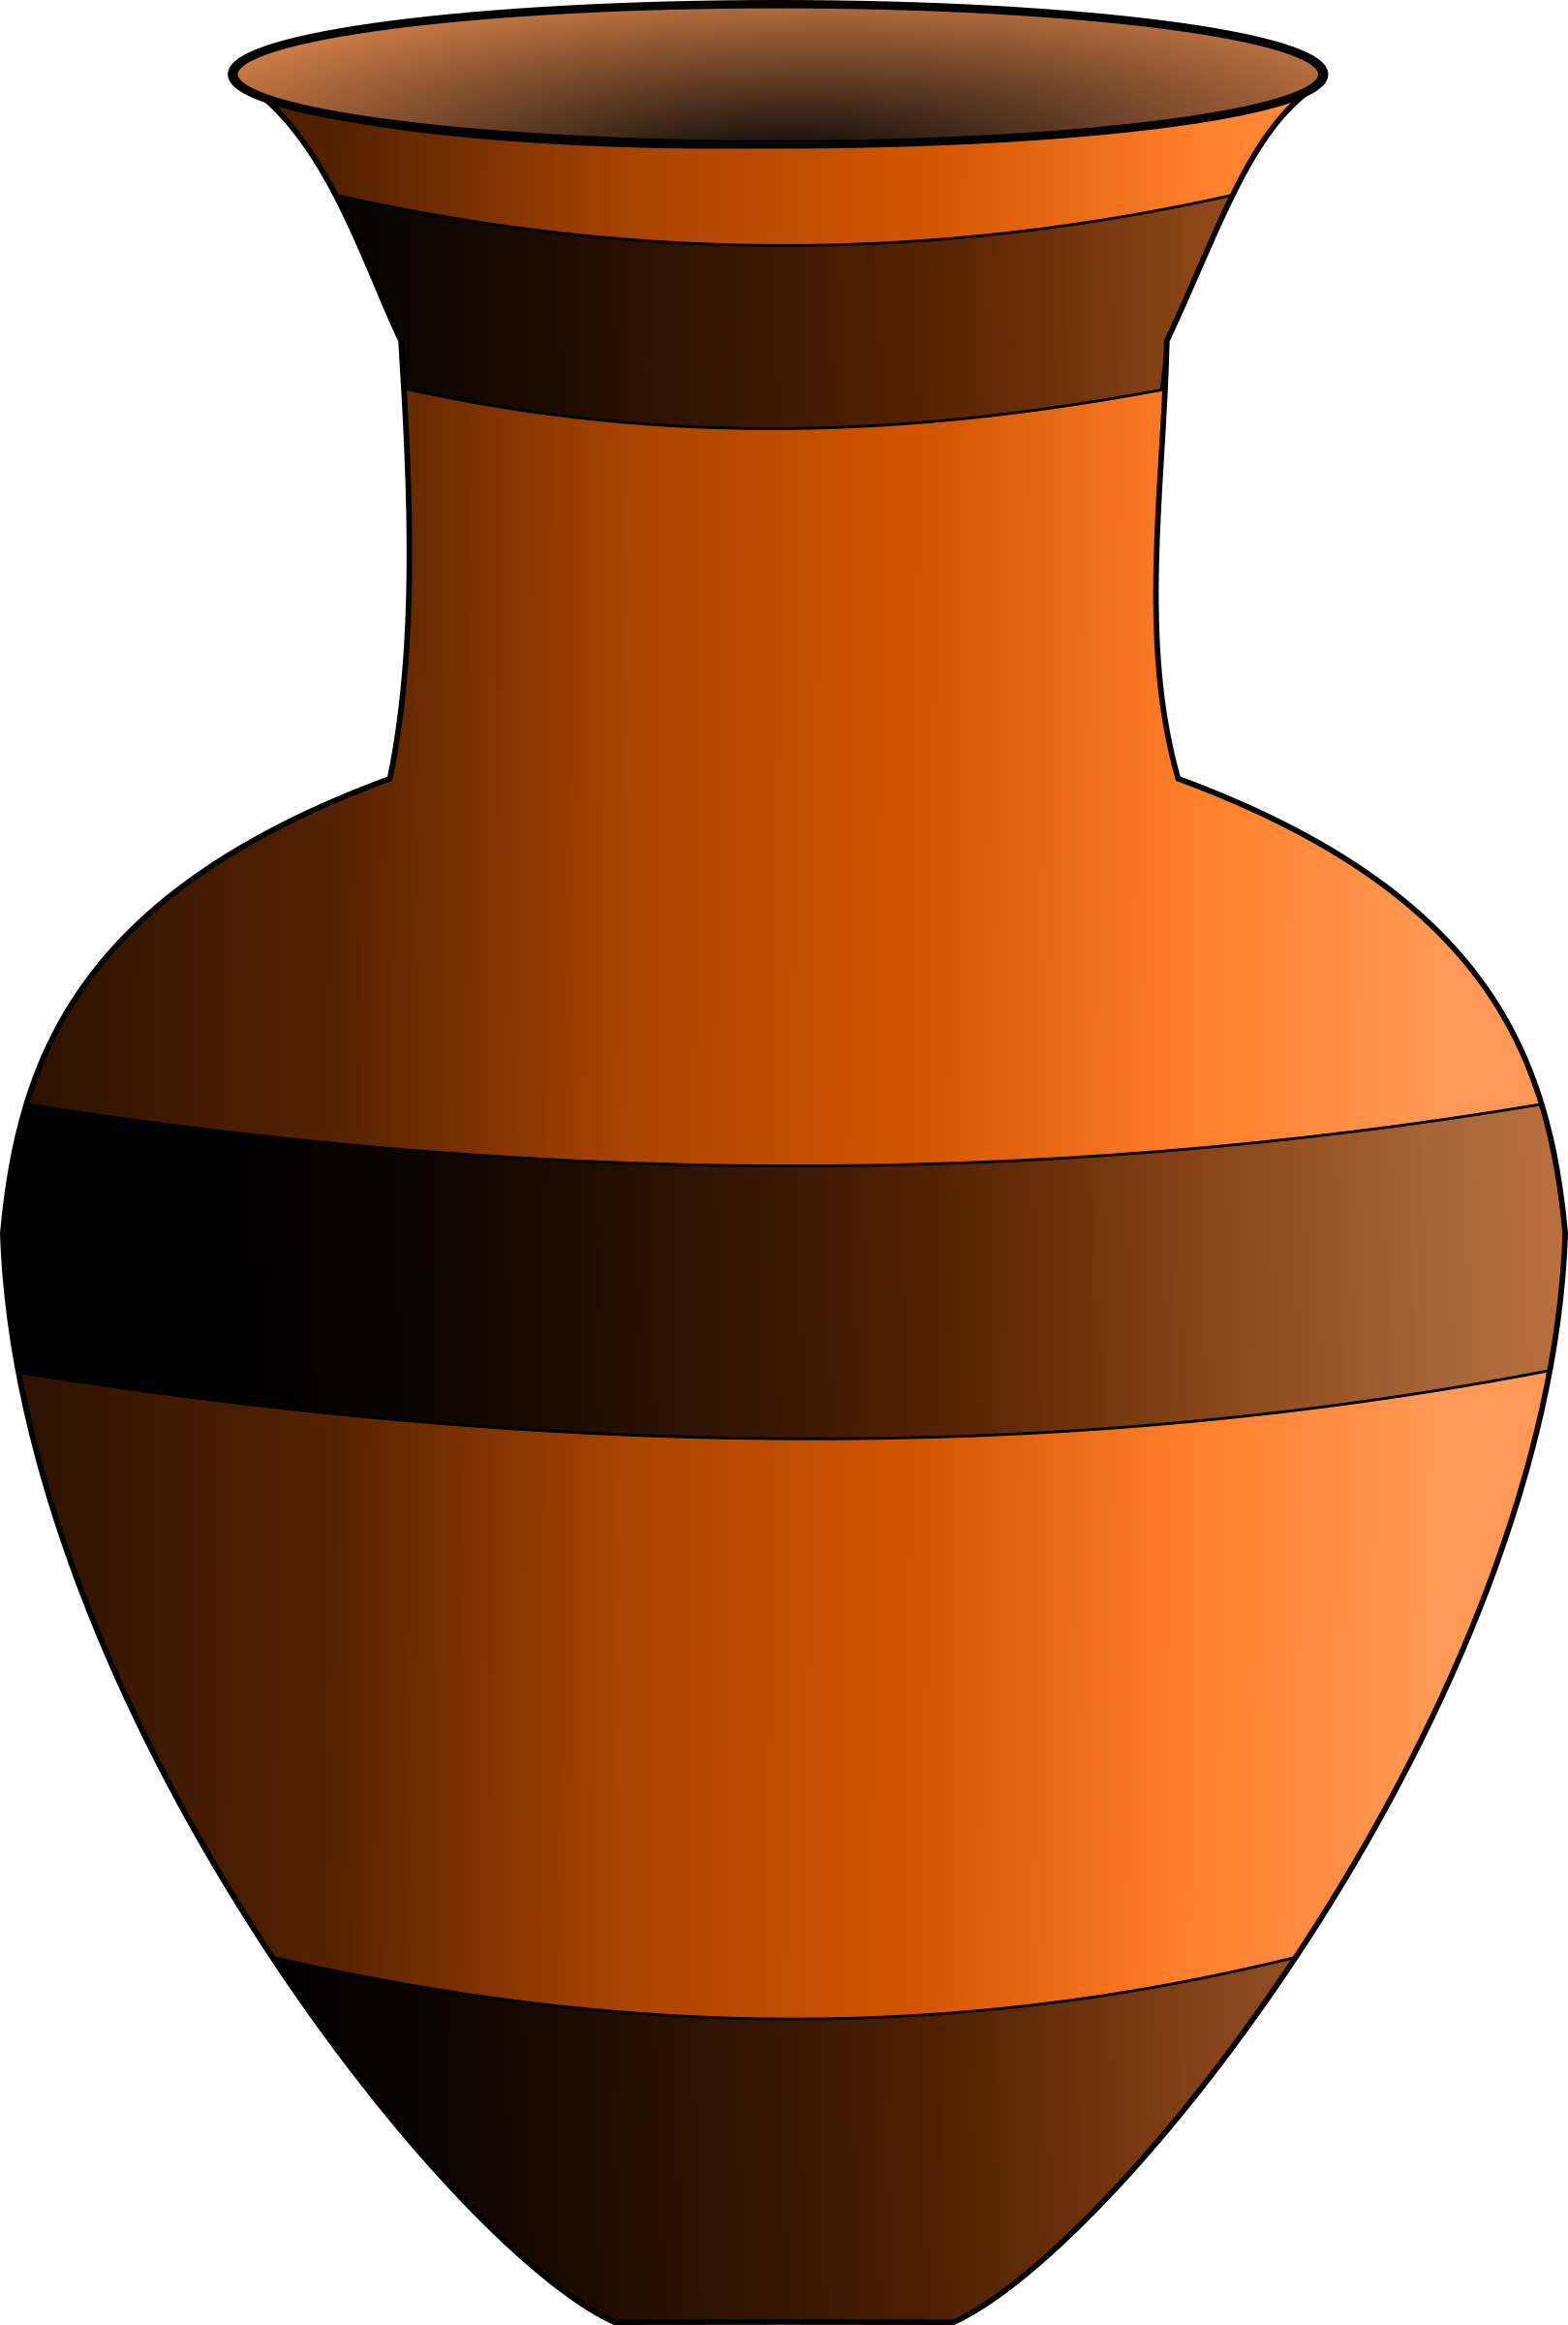 Pottery clipart animated, Pottery animated Transparent FREE.